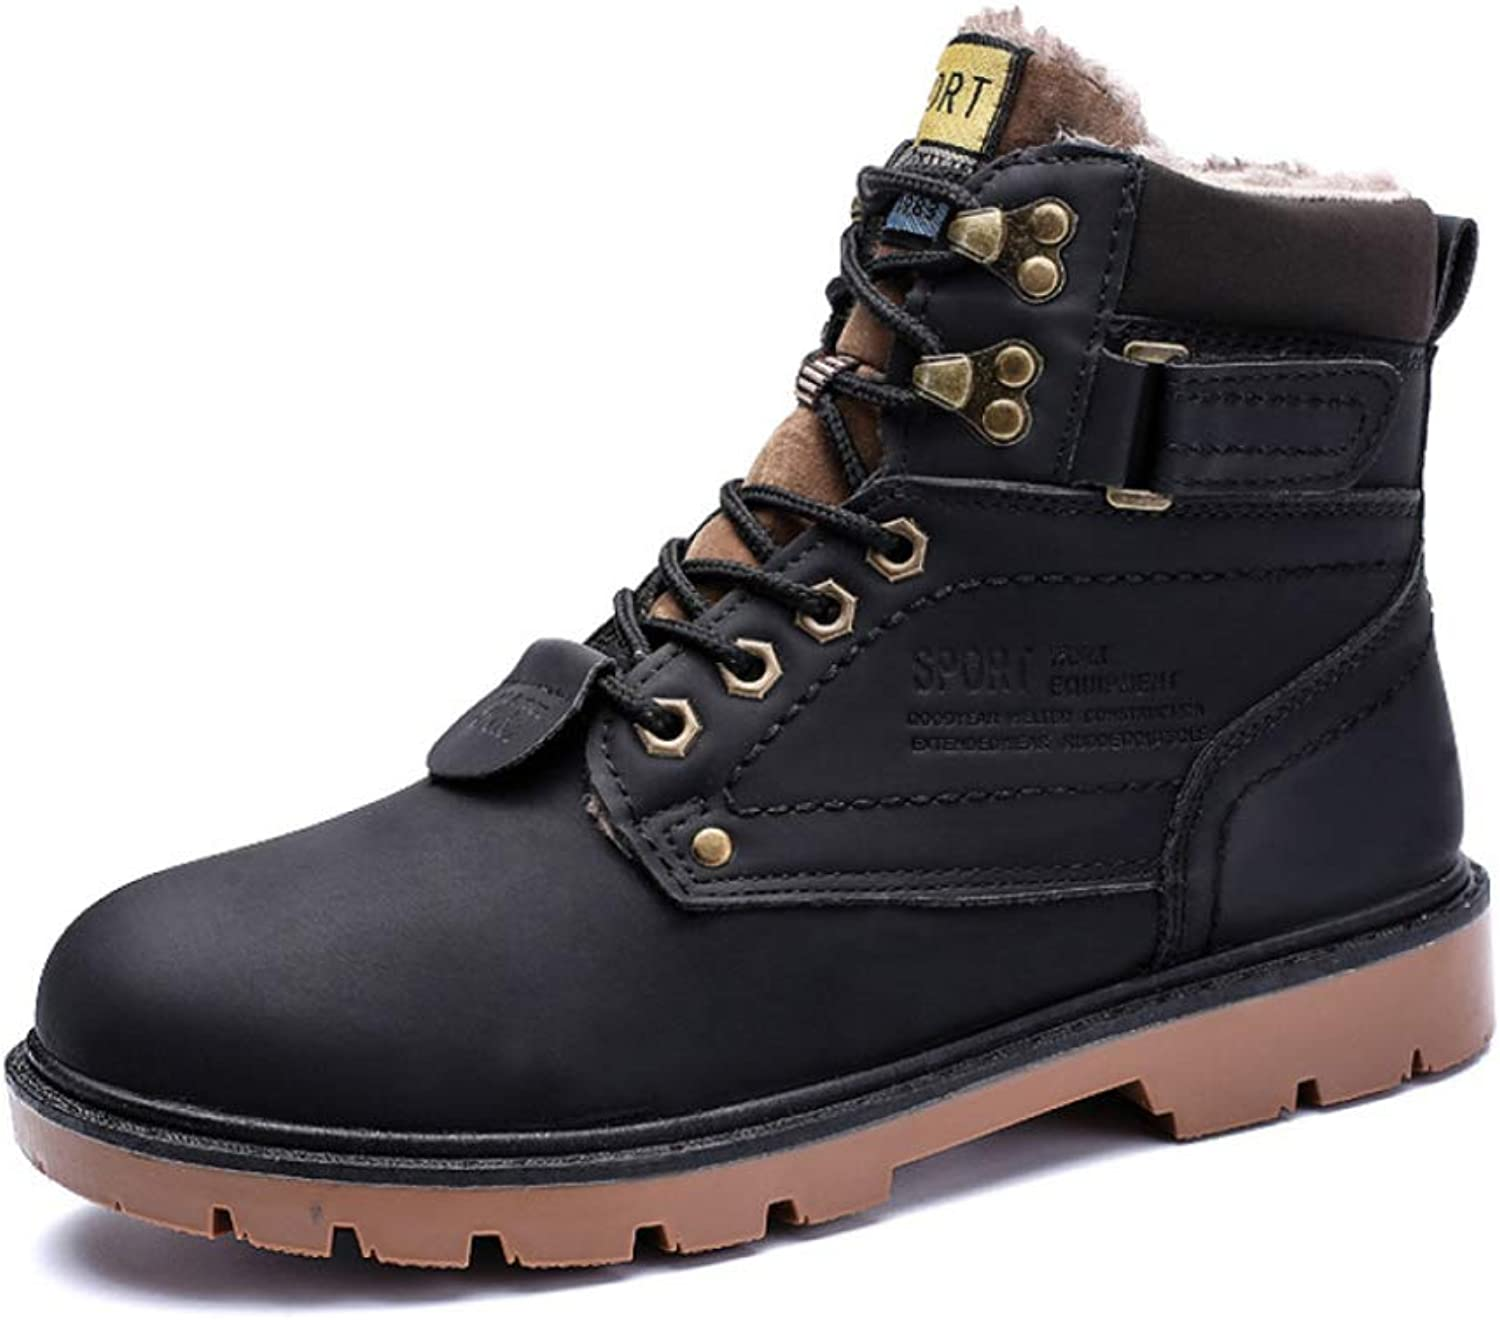 Men'S Boots Martin Boots Winter Plus Velvet Warm Cotton shoes Yellow Boots In The High Top Hiking Boots